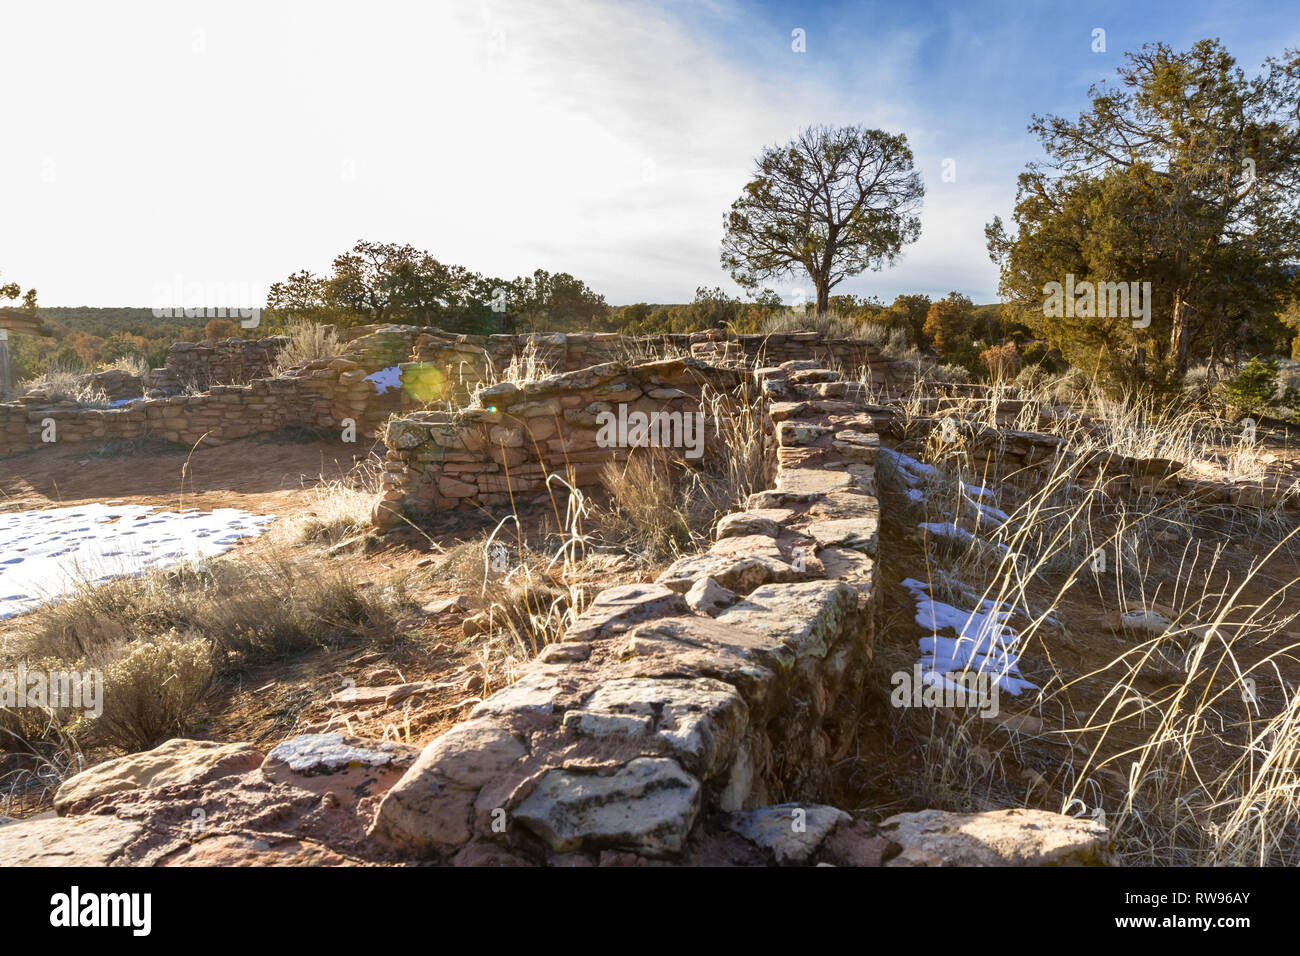 Mule Canyon Ruins alongside highway between Blanding and  Natural Bridges National Monument, Ancient construction with sandstone bricks - Stock Image